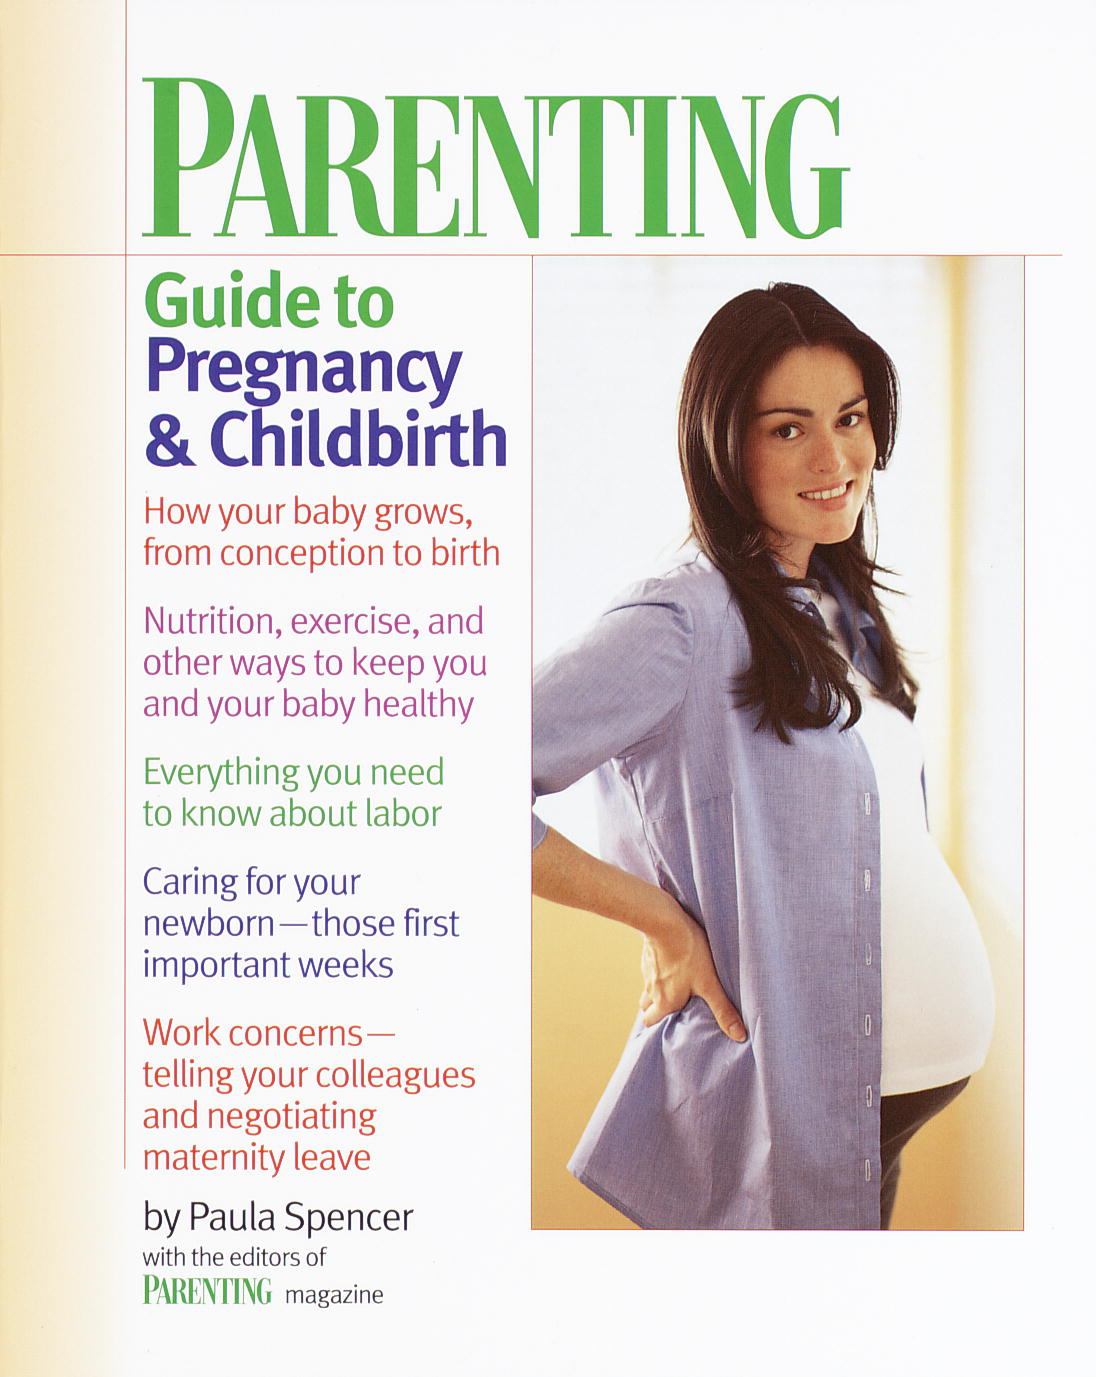 Parenting: Guide to Pregnancy and Childbirth